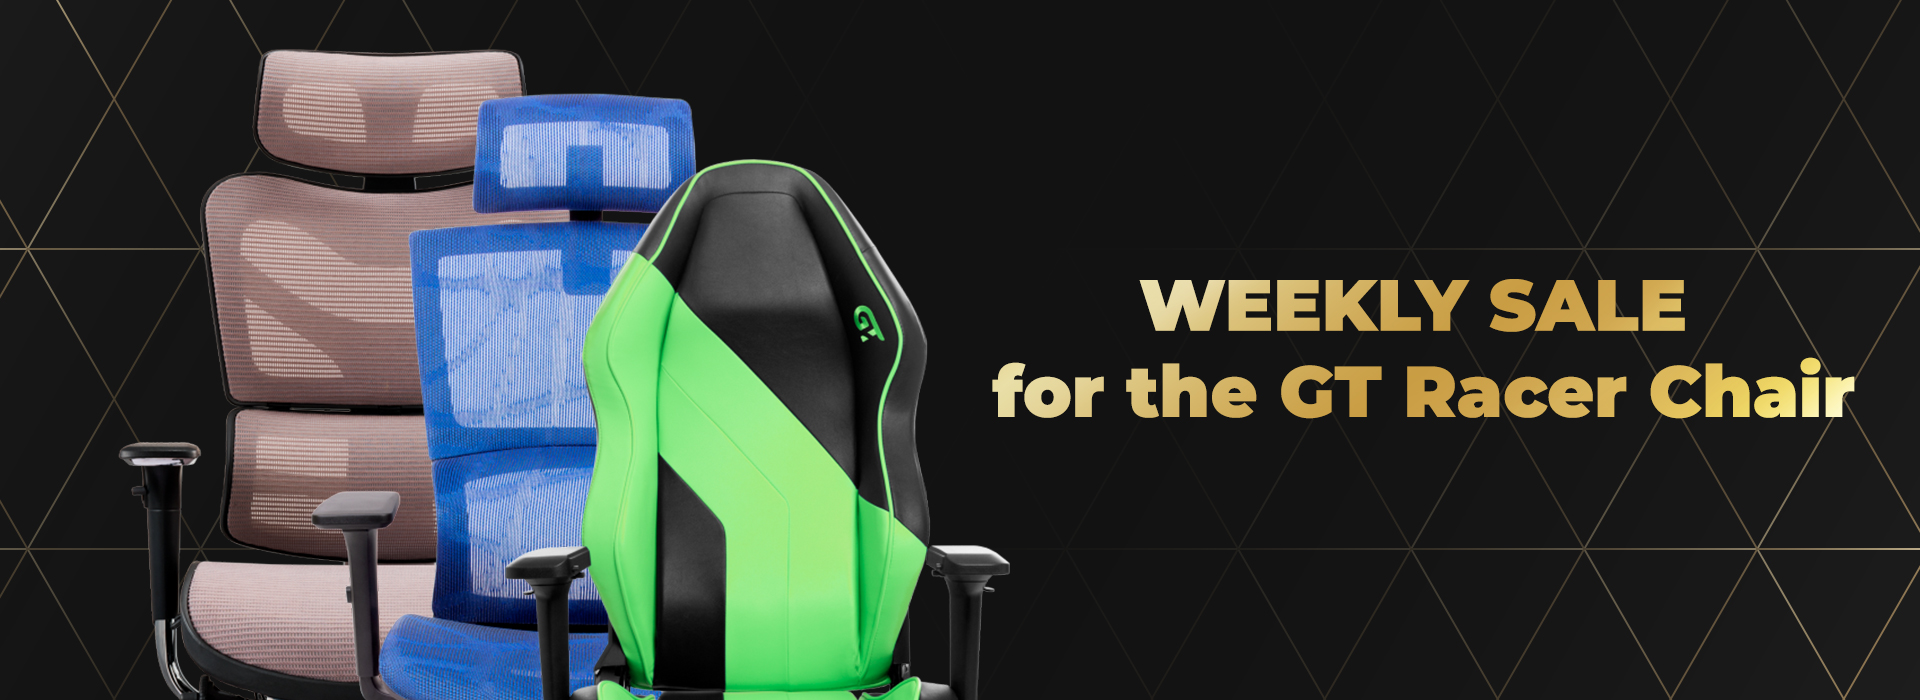 Stock! Weekly sale for the GT Racer chair!